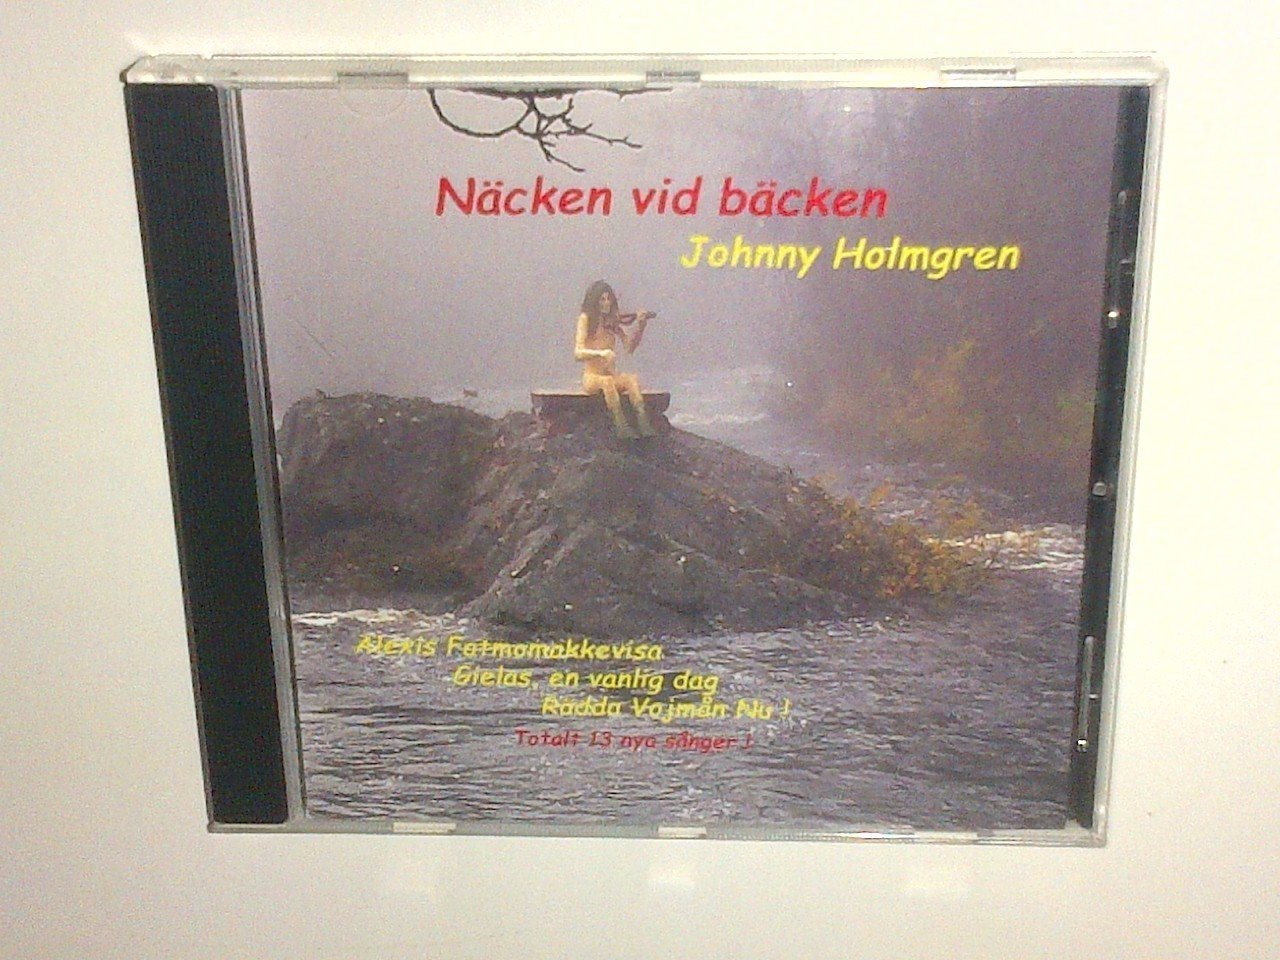 Johnny Holmgren - Näcken vid bäcken, CD